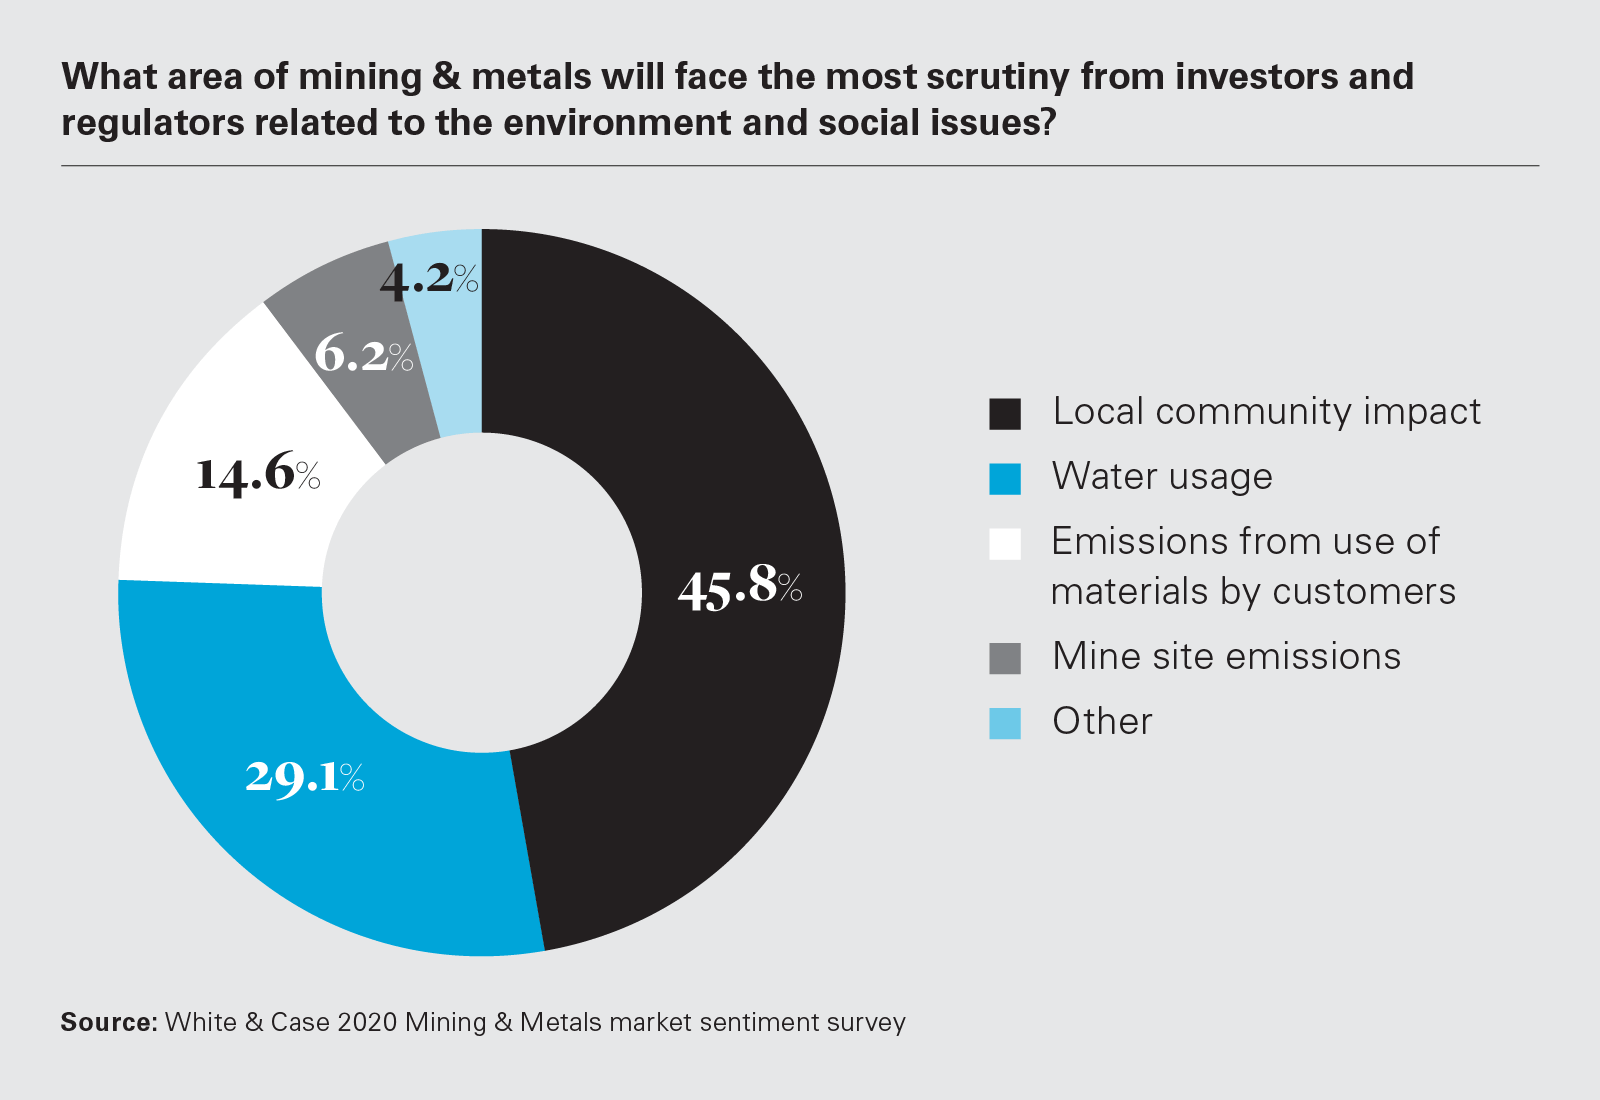 What area of mining & metals will face the most scrutiny from investors and regulators related to the environment and social issues?